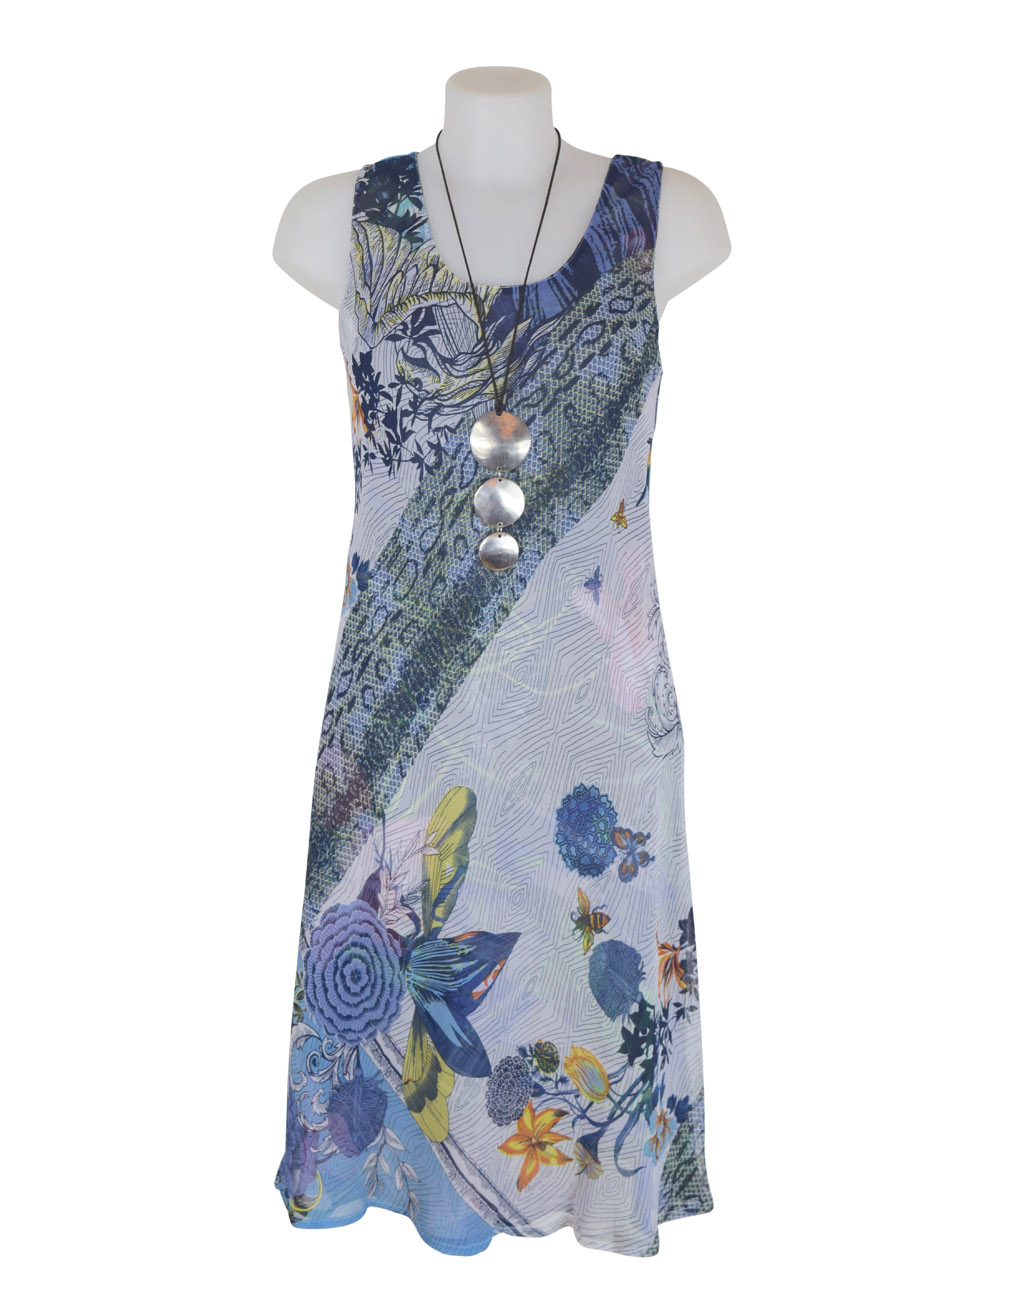 Paramour Reversible 2 In 1 Sleeveless Dress Blue / White B